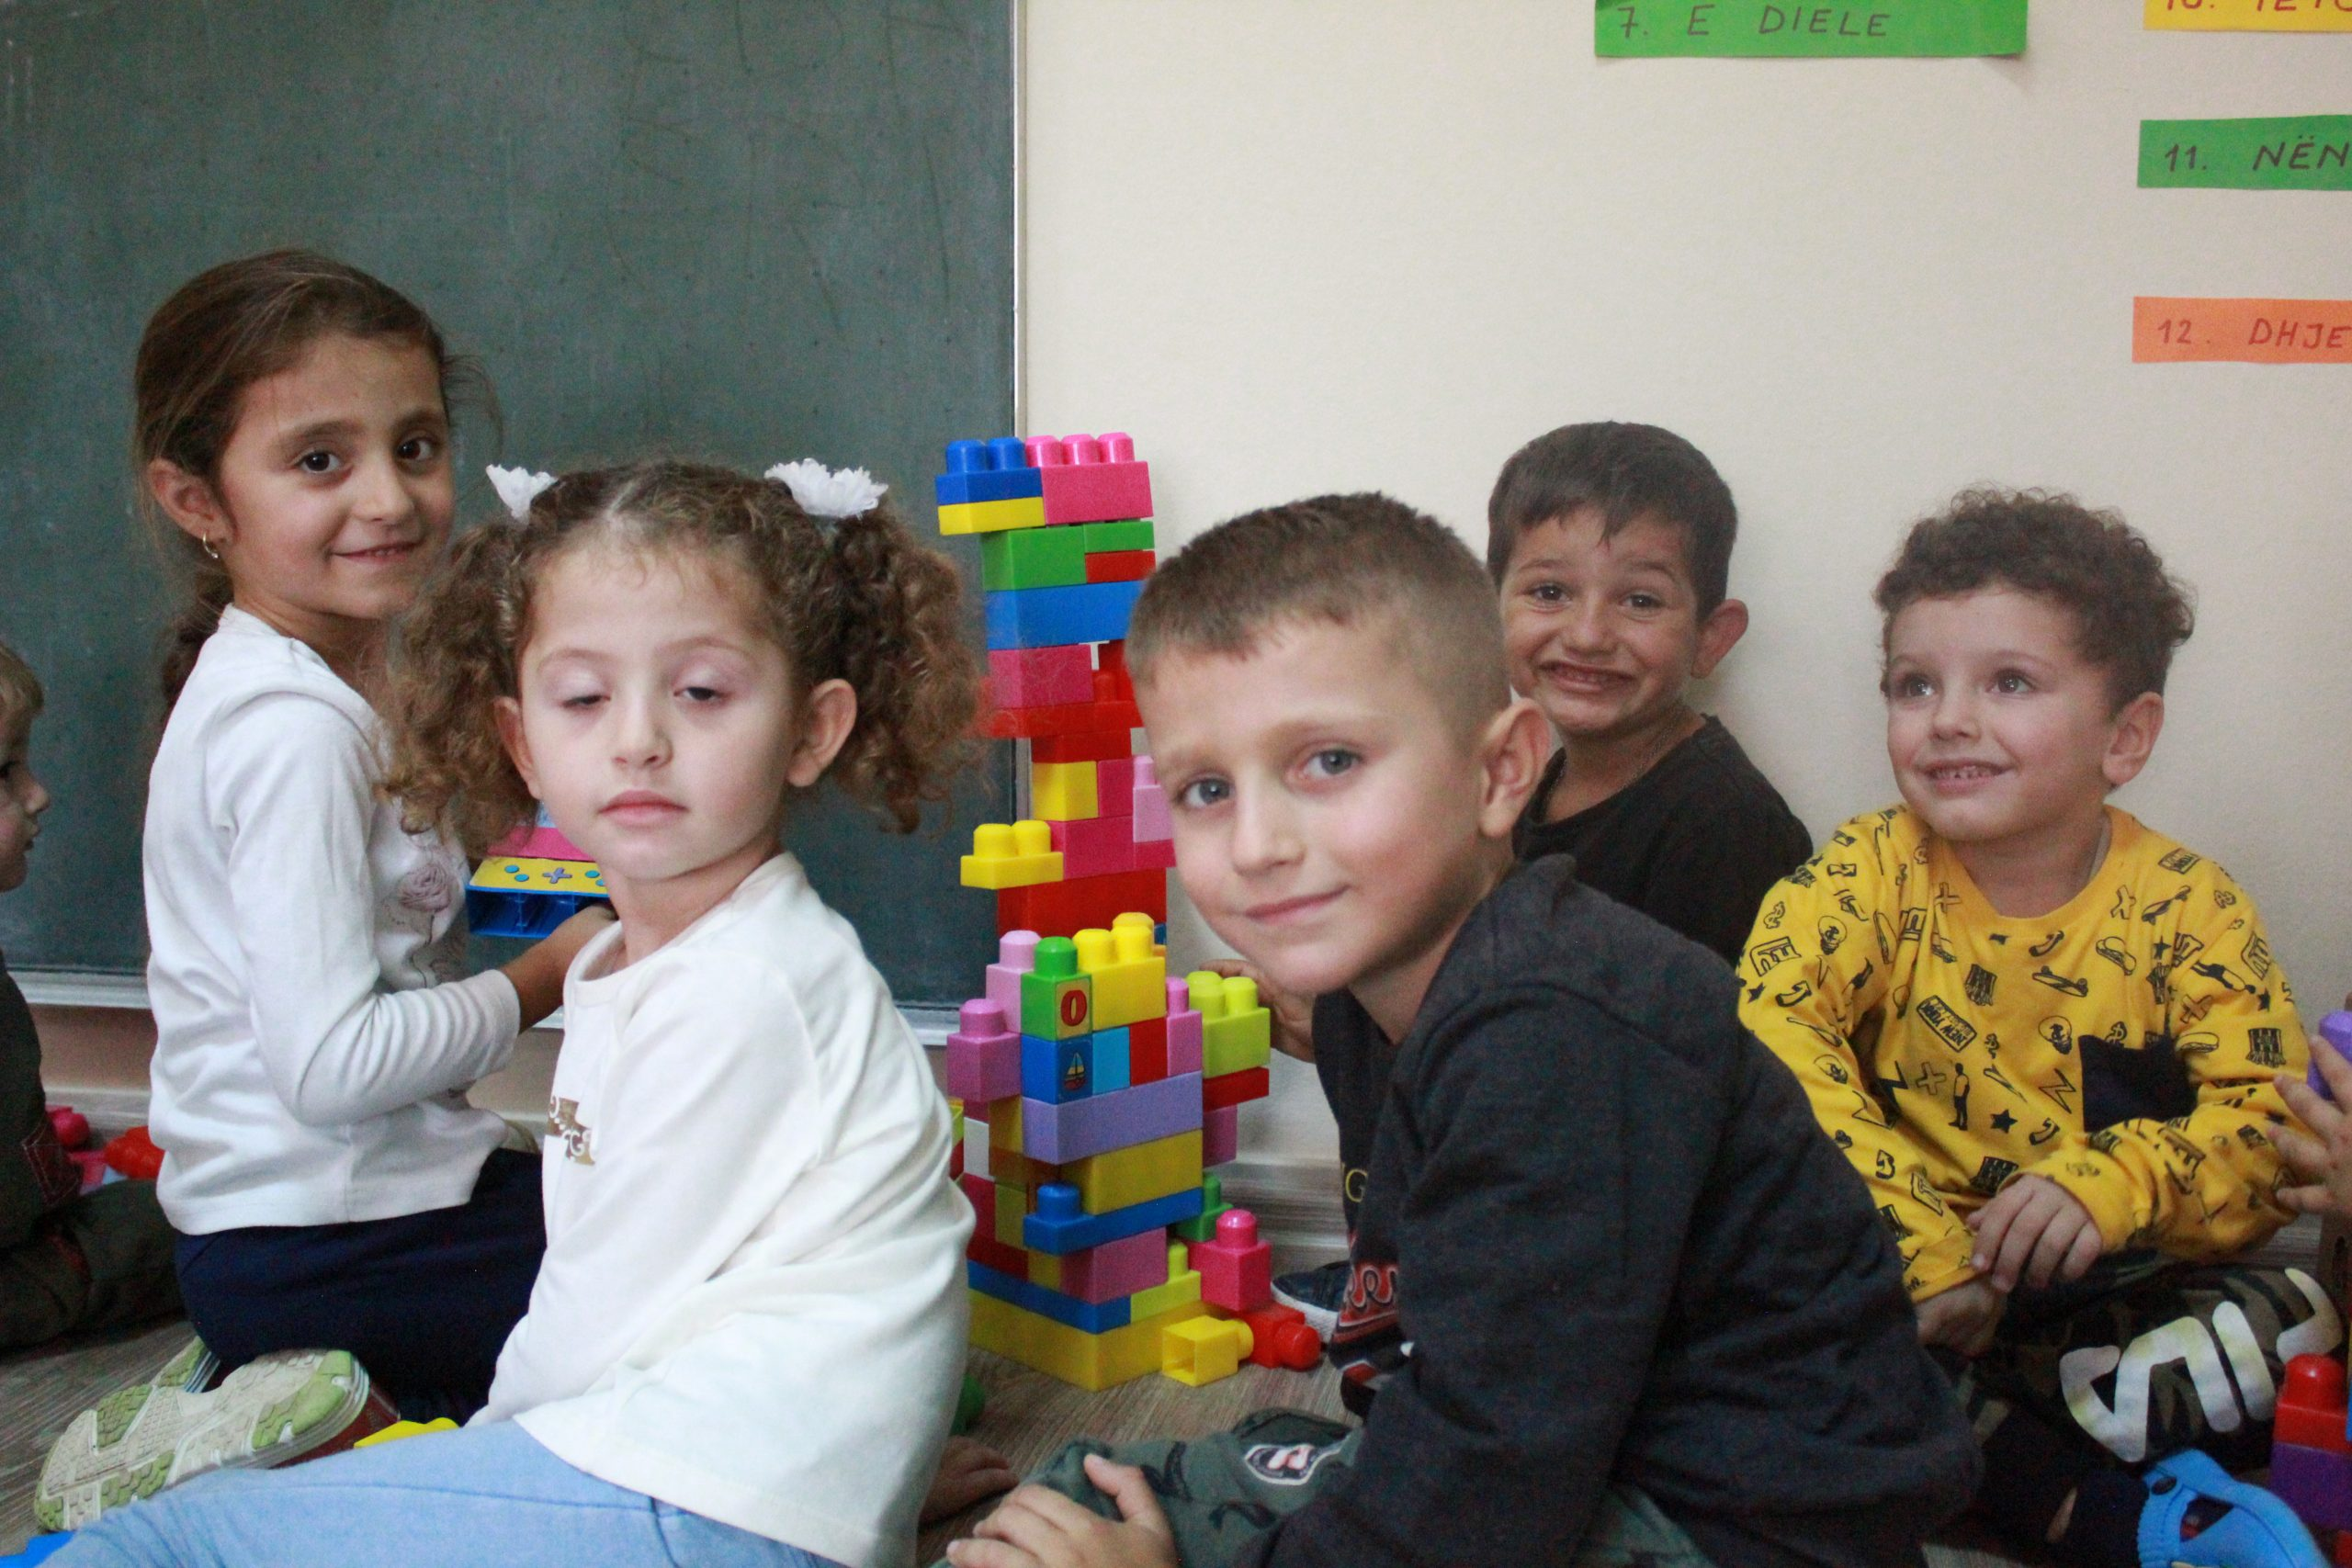 Albanian children playing together